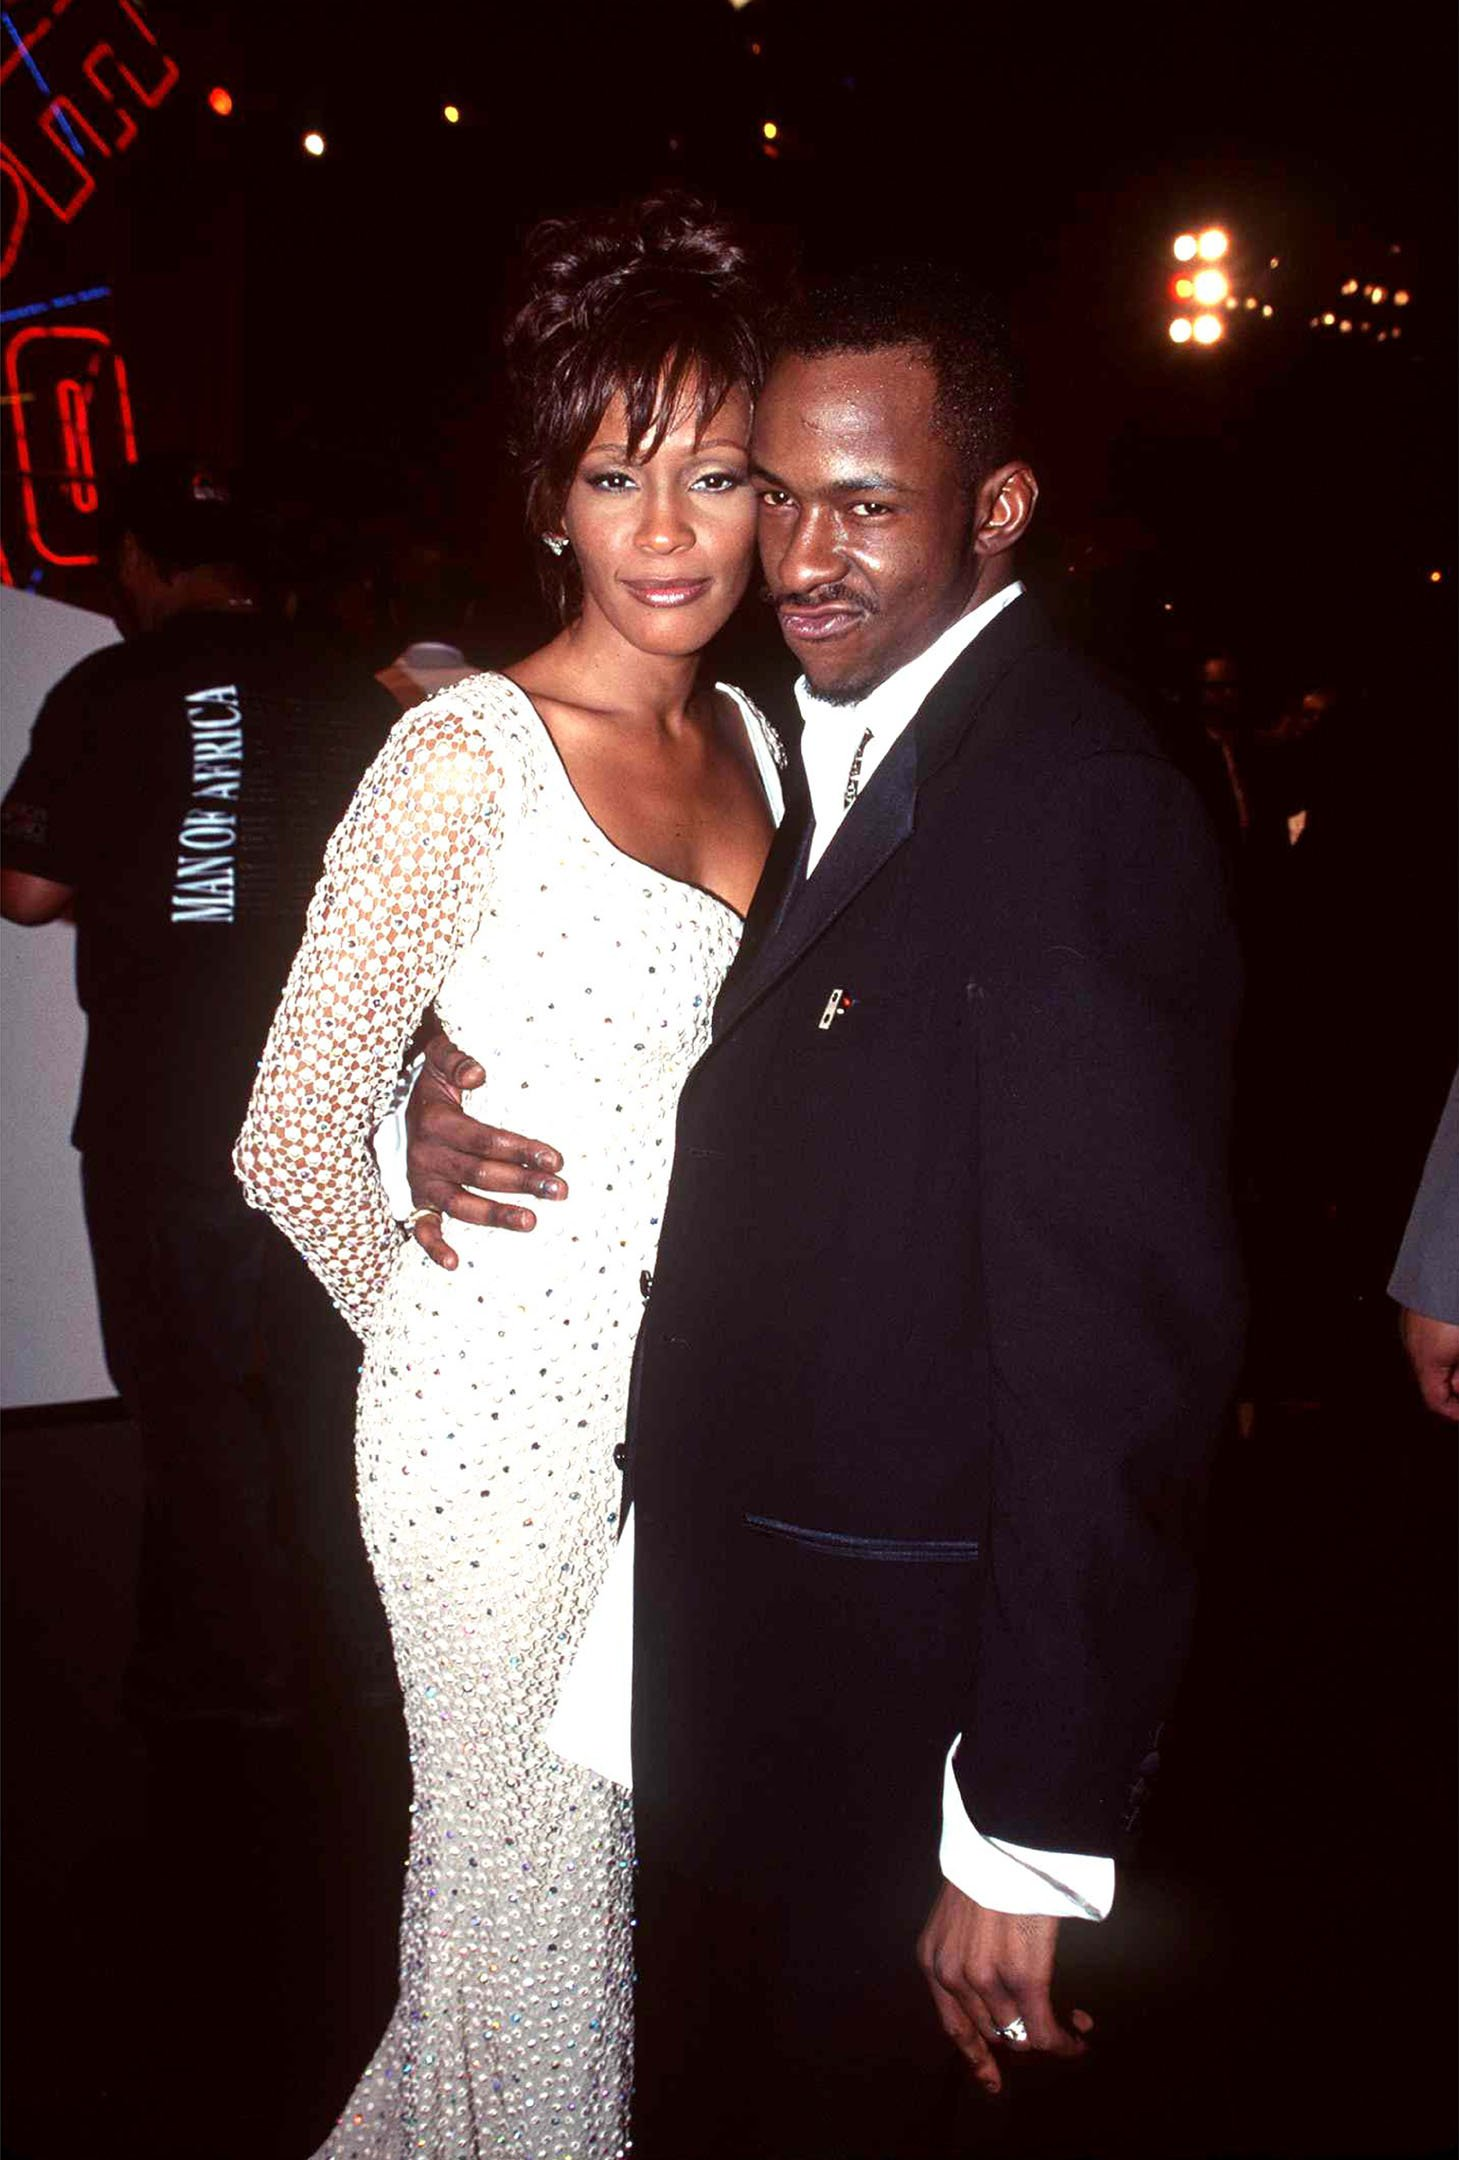 Whitney Houston and Bobbby Brown attending an event in 1996.   Photo: Getty Images